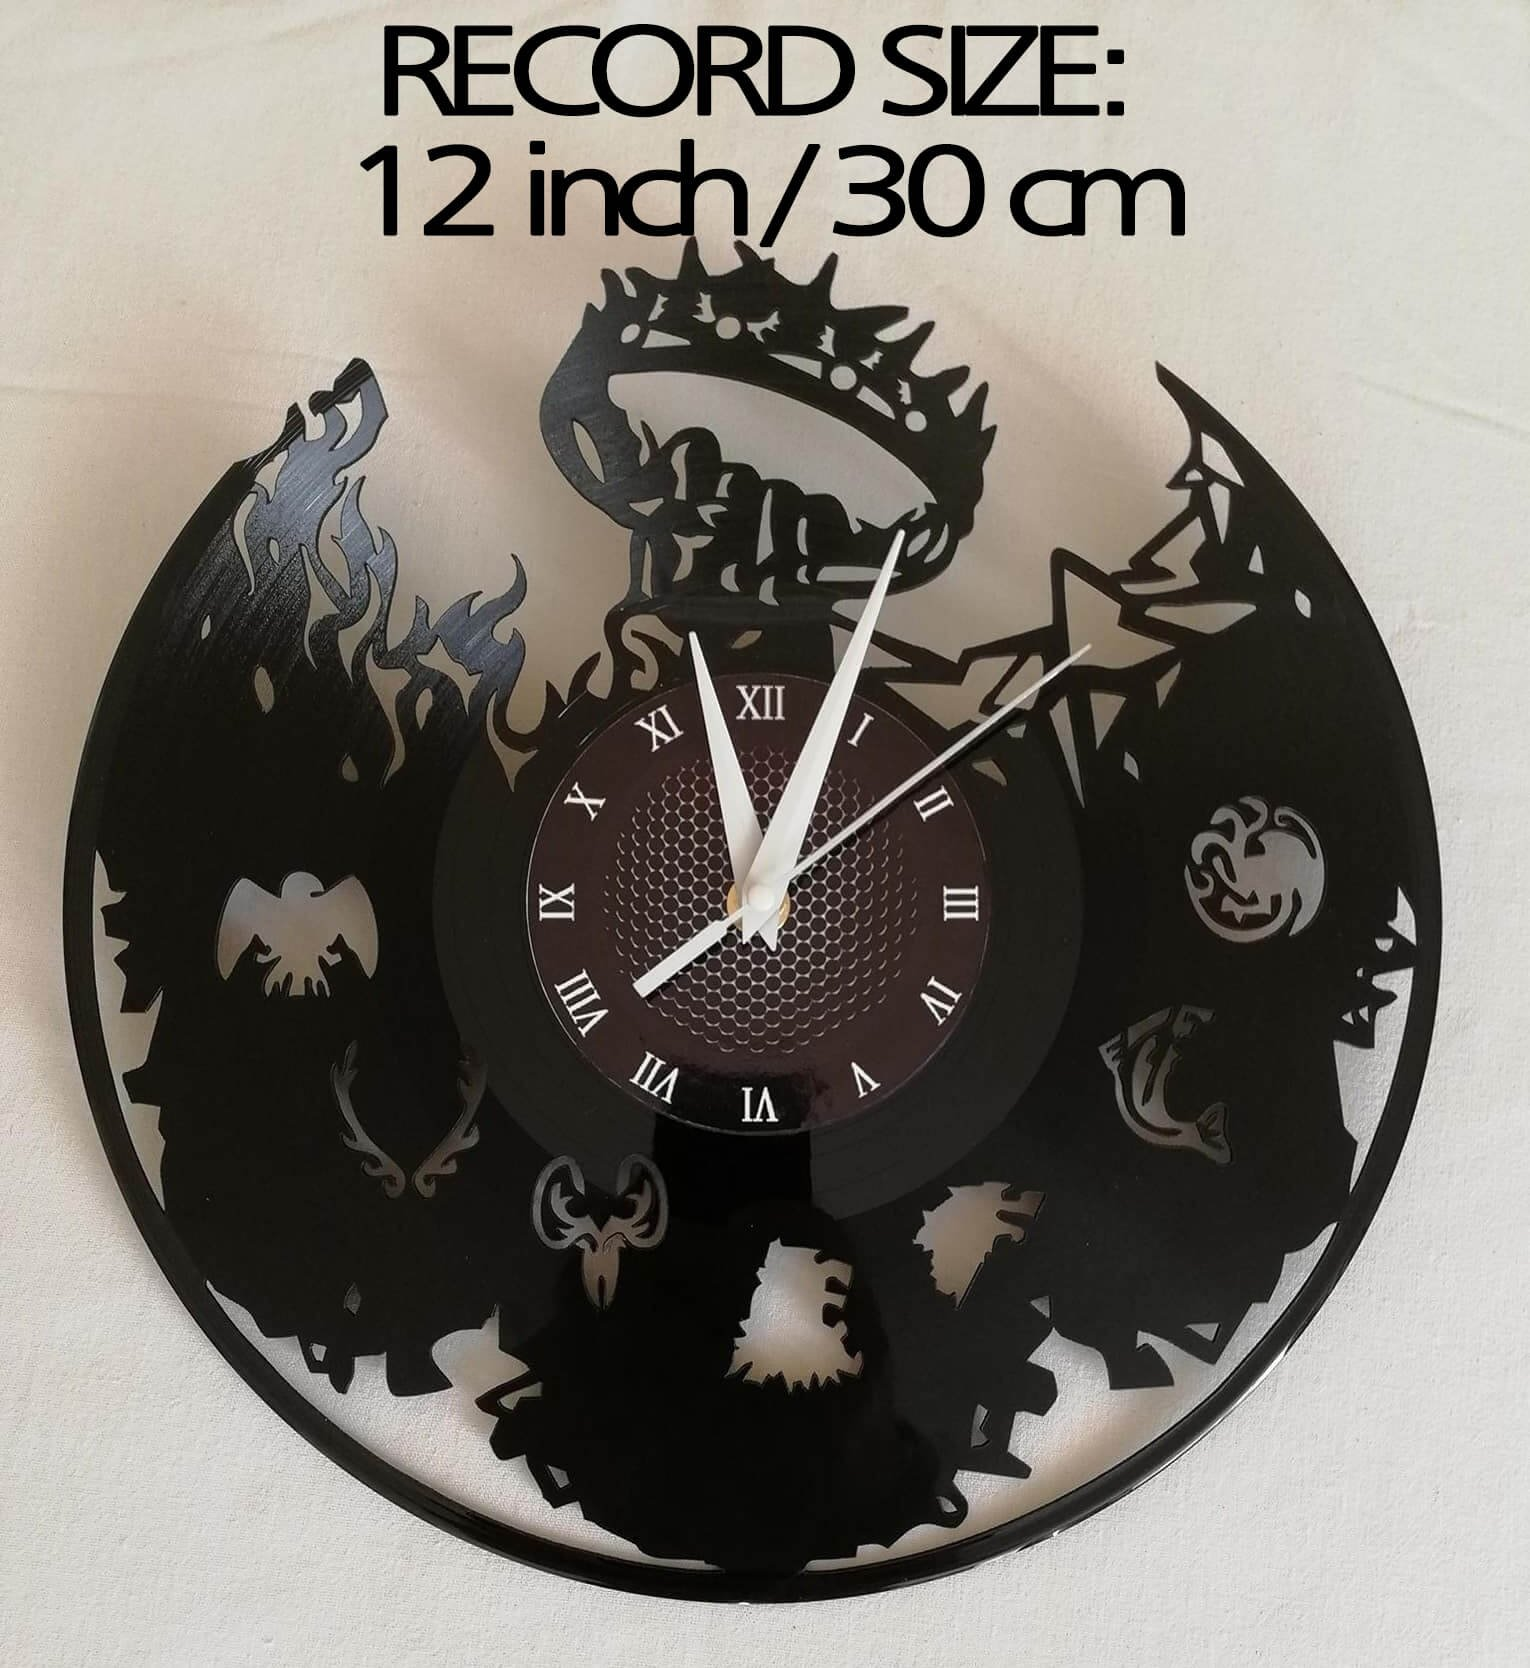 SEASON 7 GAME OF THRONES Handmade Vinyl Record Wall Clock - Get unique home room wall decor - MARVEL COMICS Gift ideas for parents, teens – GOT Epic Movie Unique Modern Art WINTER IS COMING SEASON 7 6